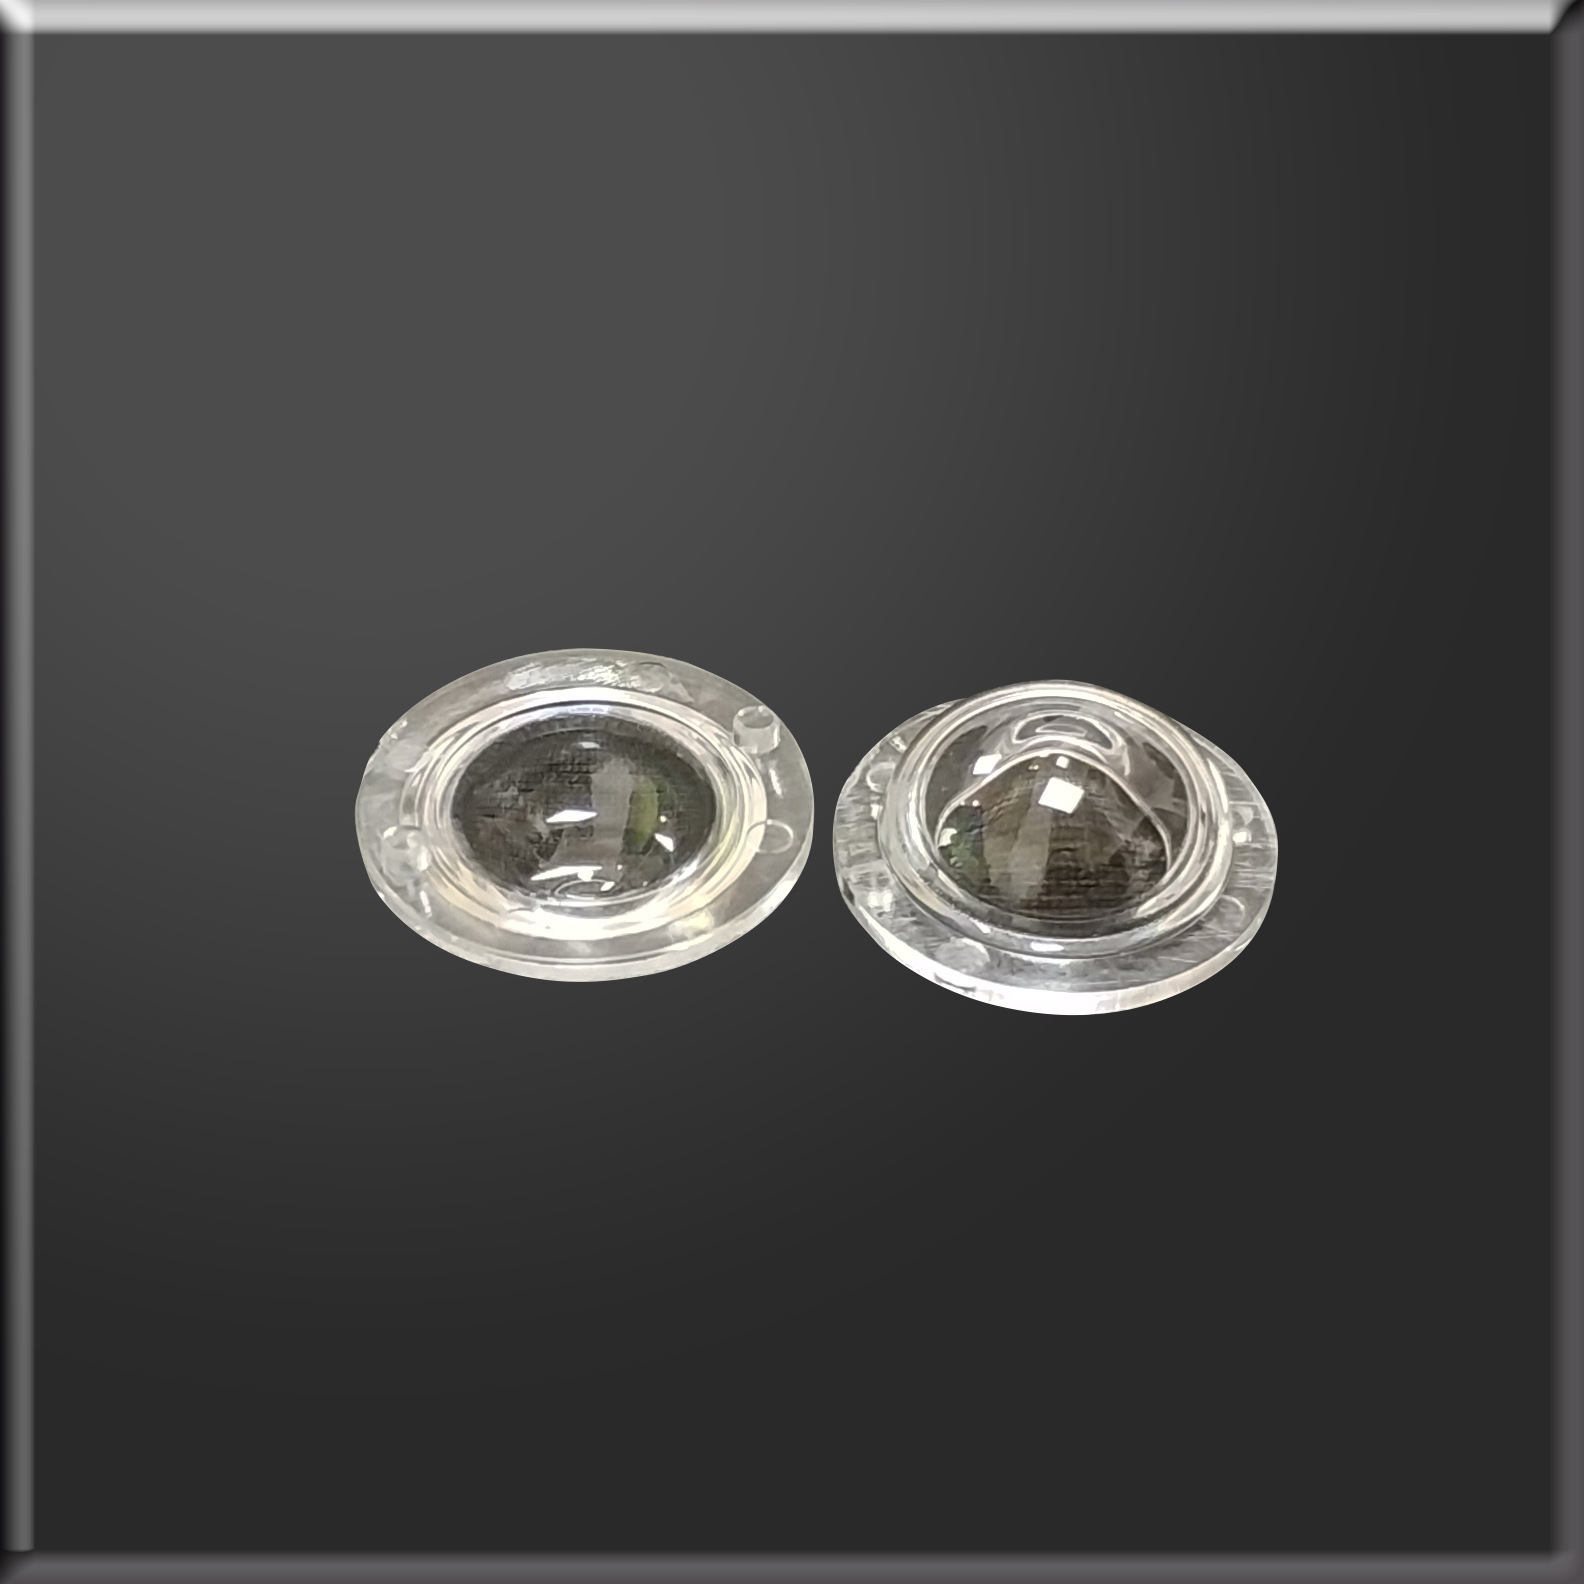 5050 Waterproof LED Chip Lens without holder for 5050 Series LED